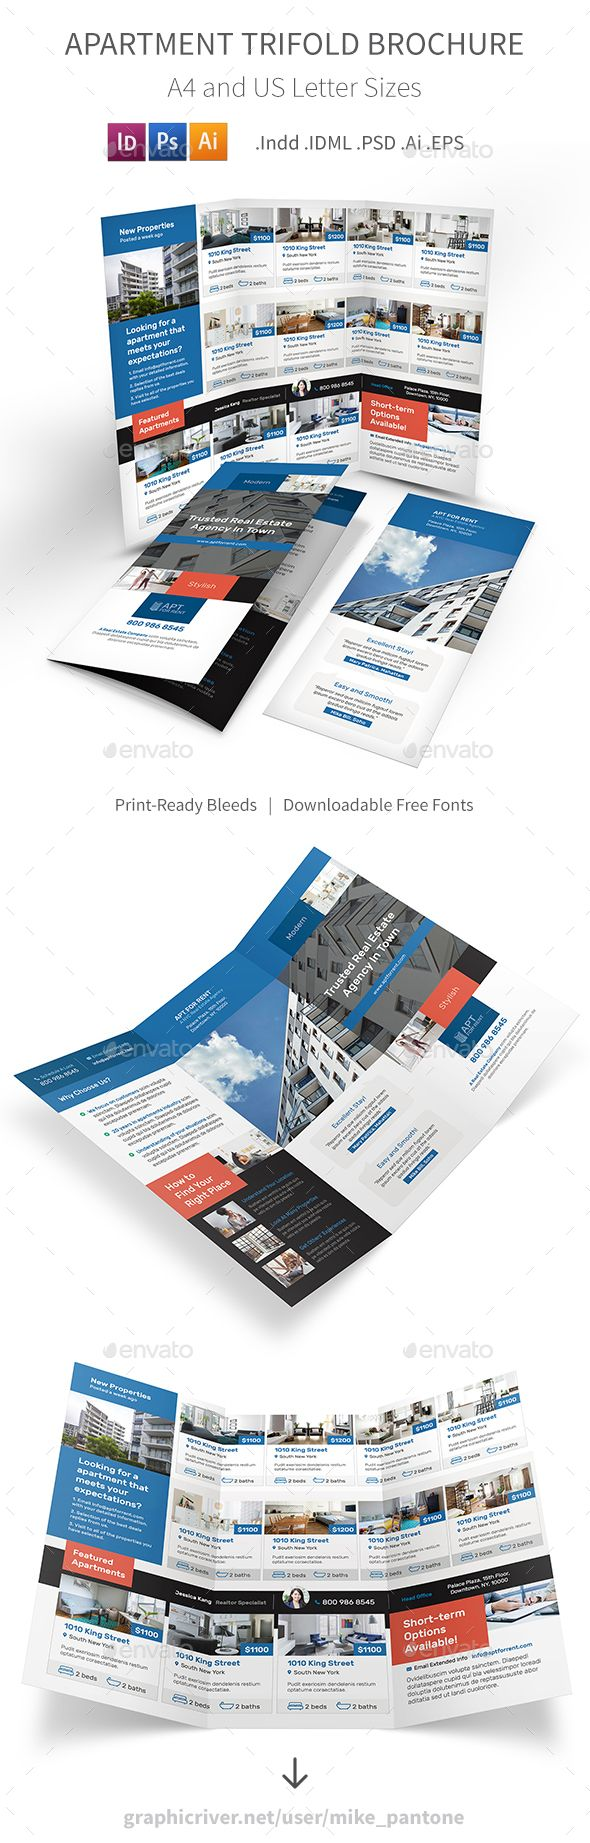 Apartment For Rent Trifold Brochure 3 Informational Brochures